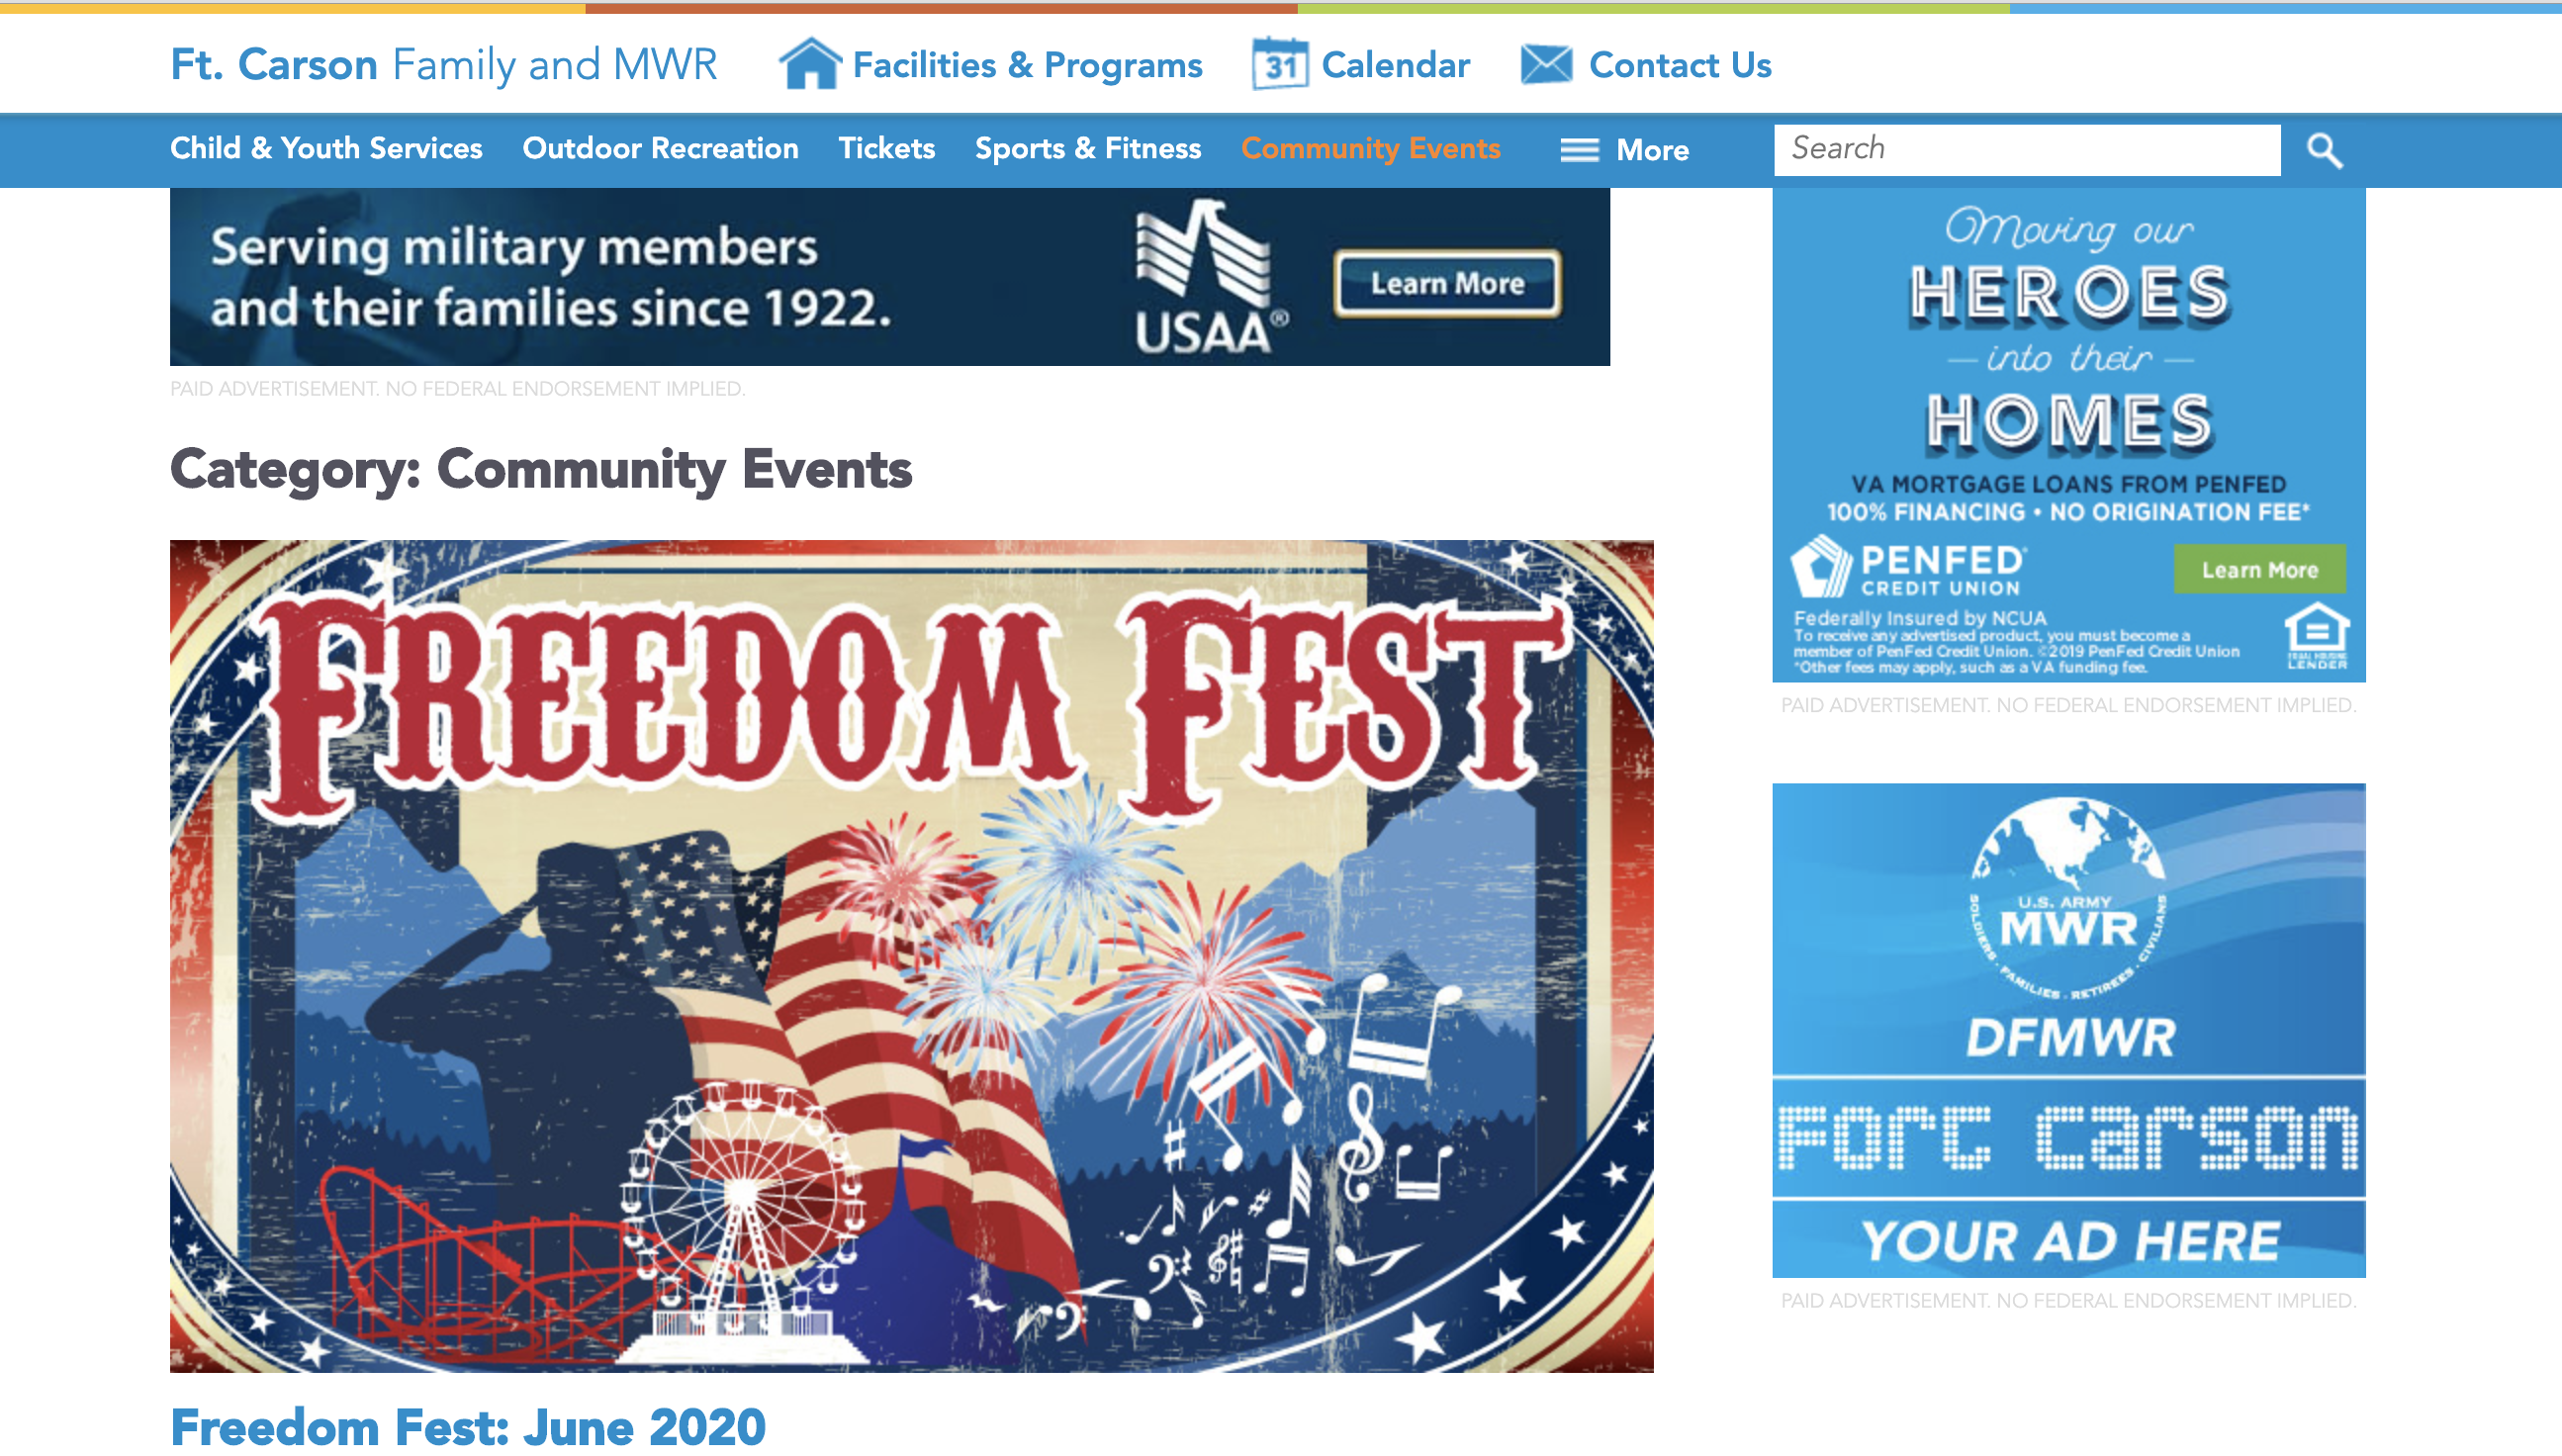 Fort Carson Military Events link